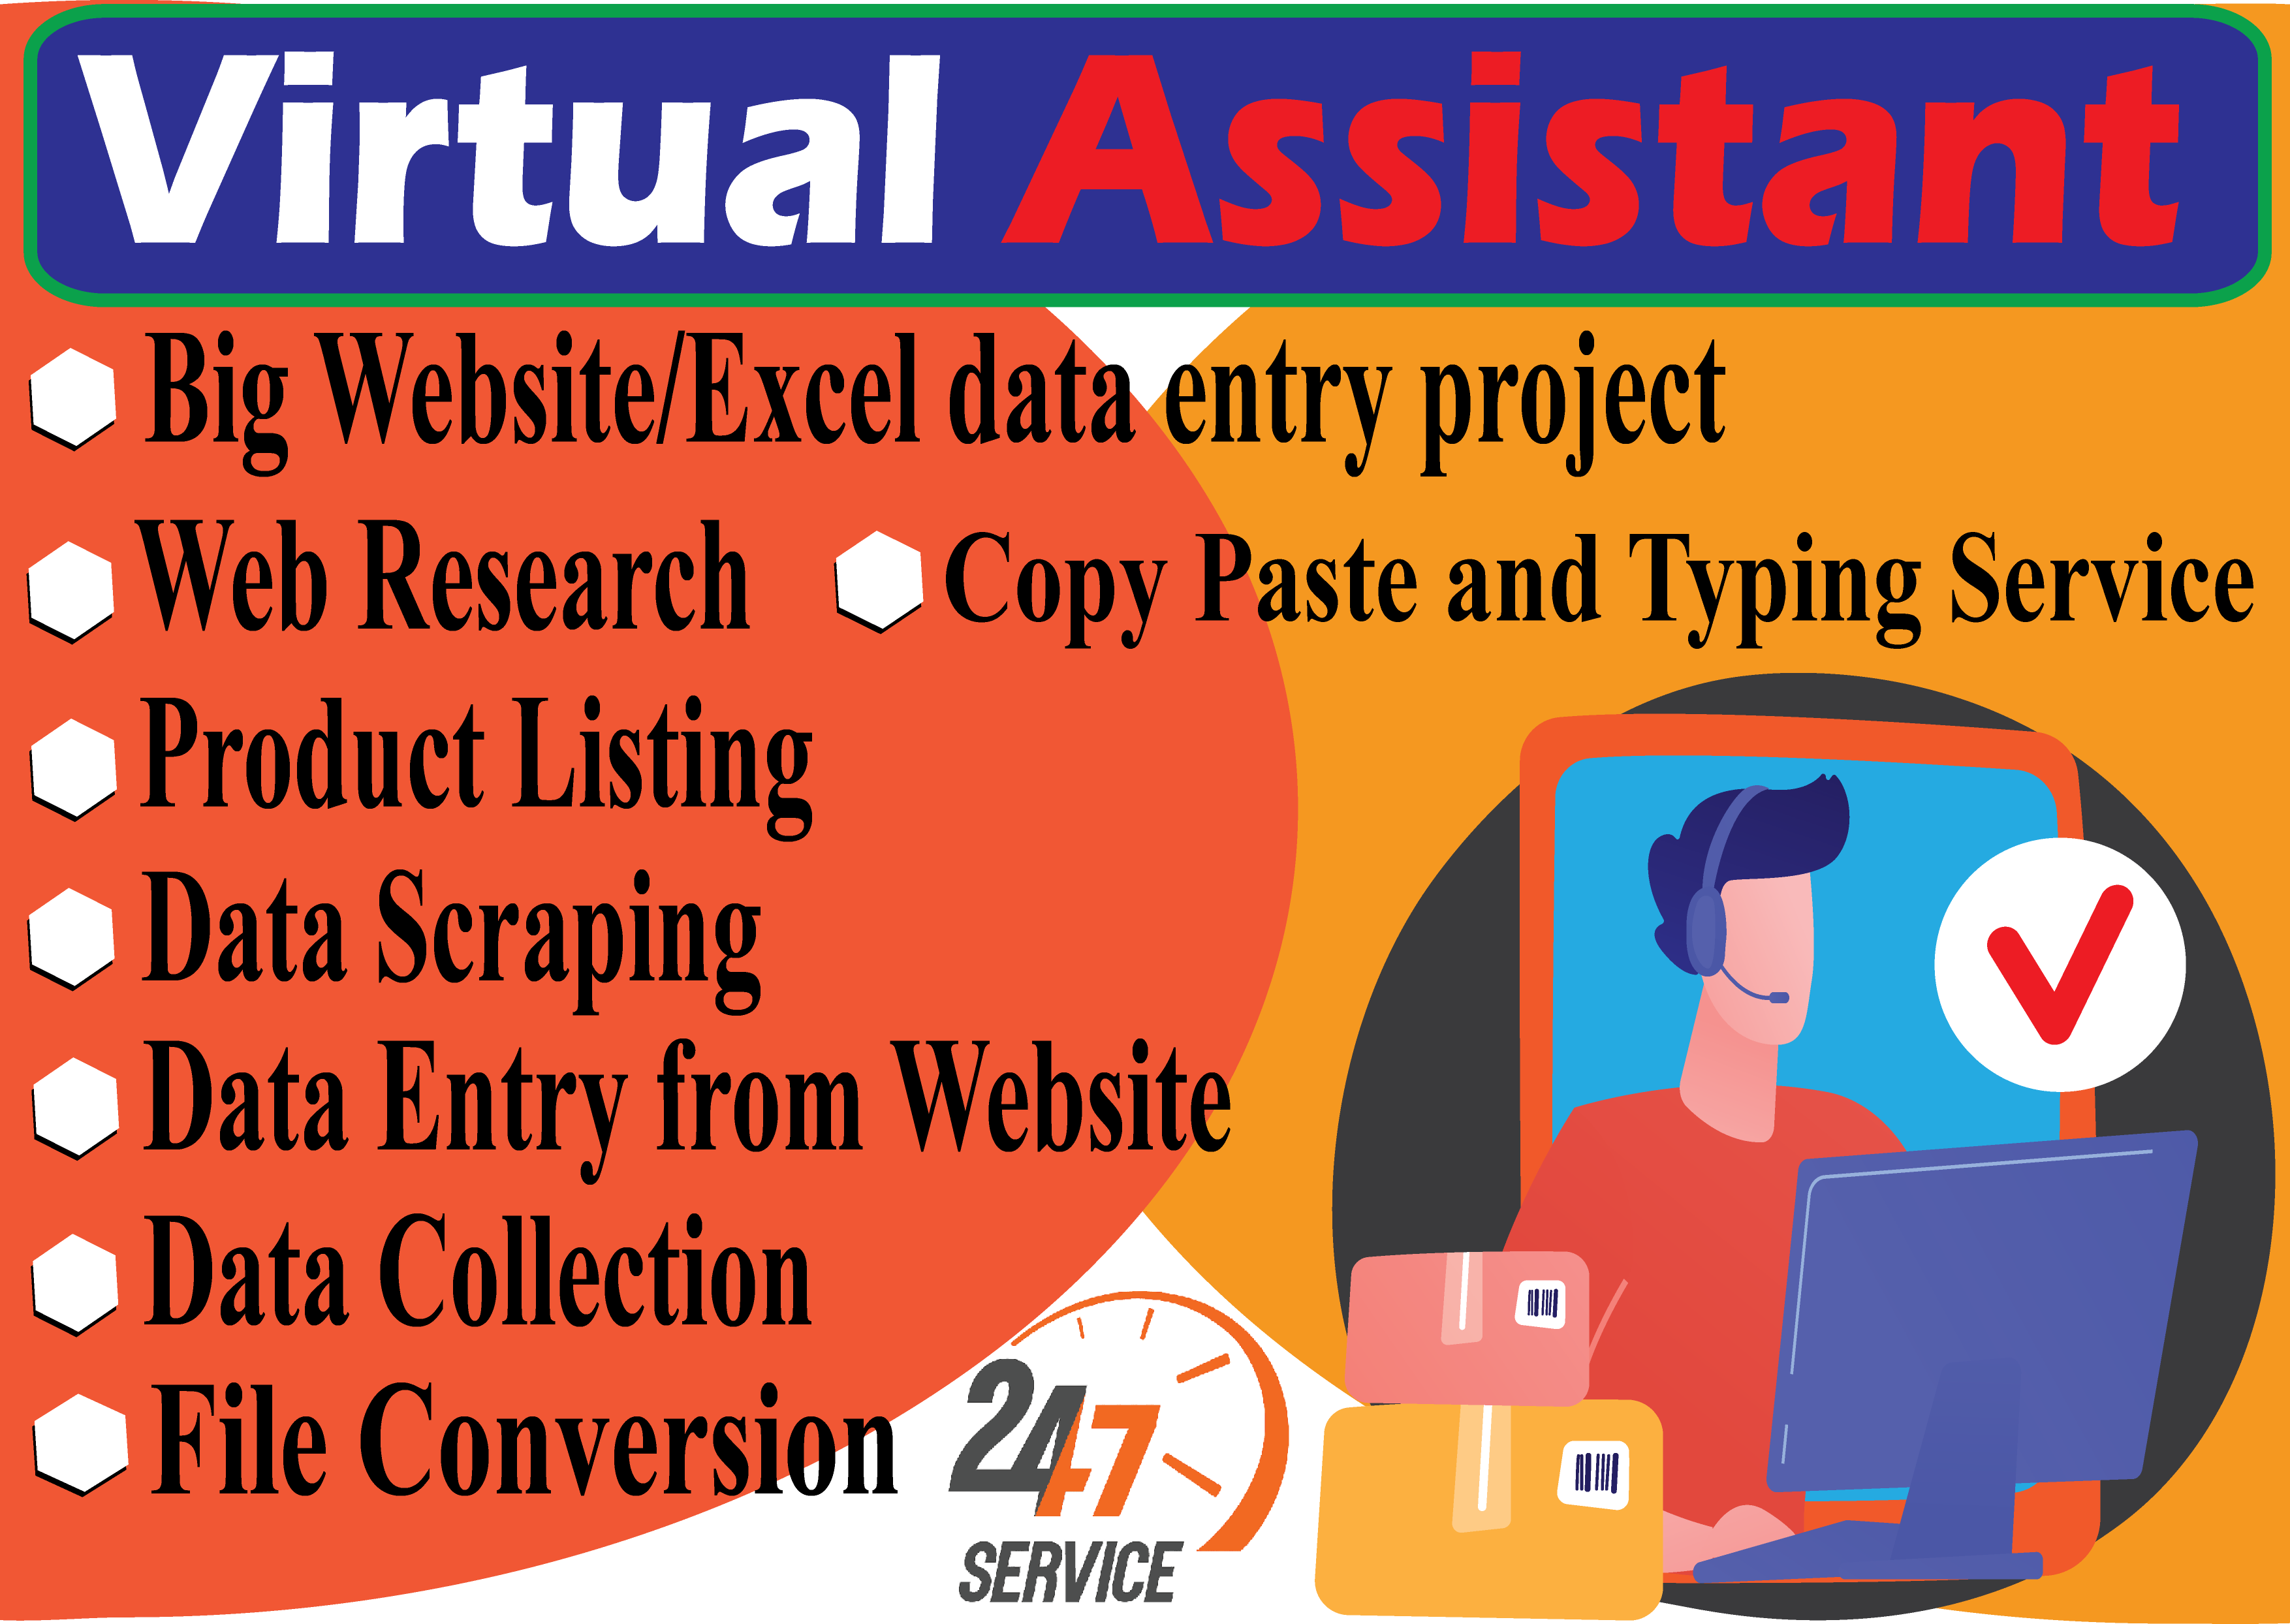 I will do data entry, copy paste, data mining, excel data entry, web research